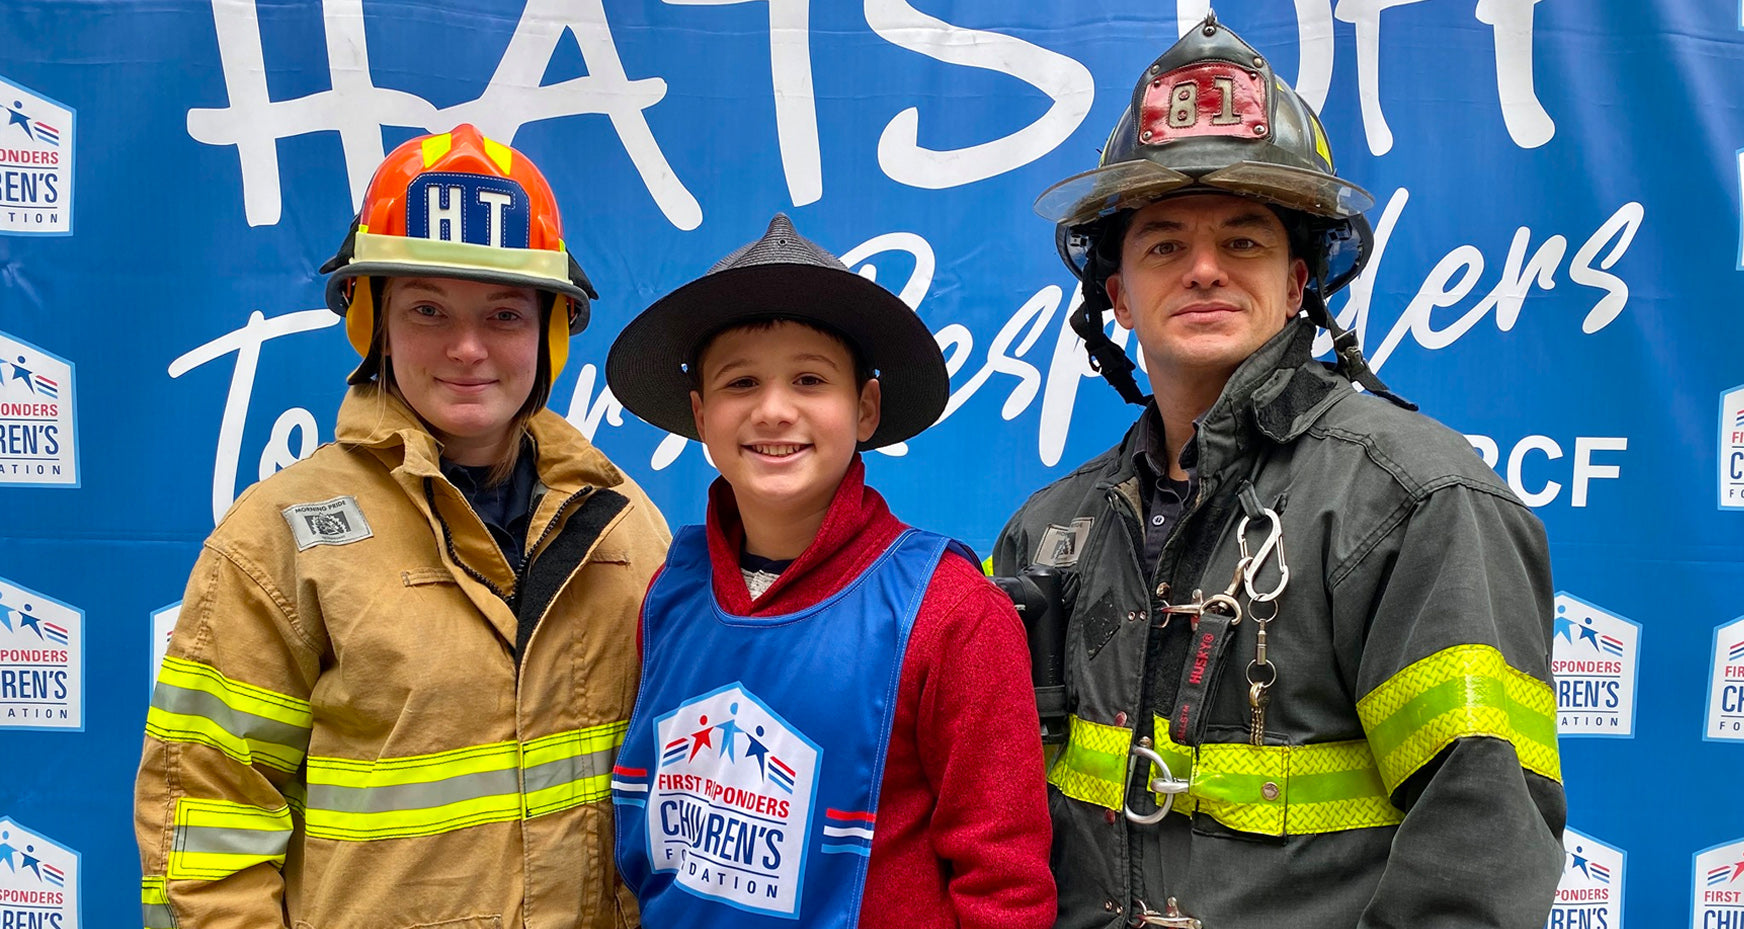 David Donahue & the First Responders Children's Foundation